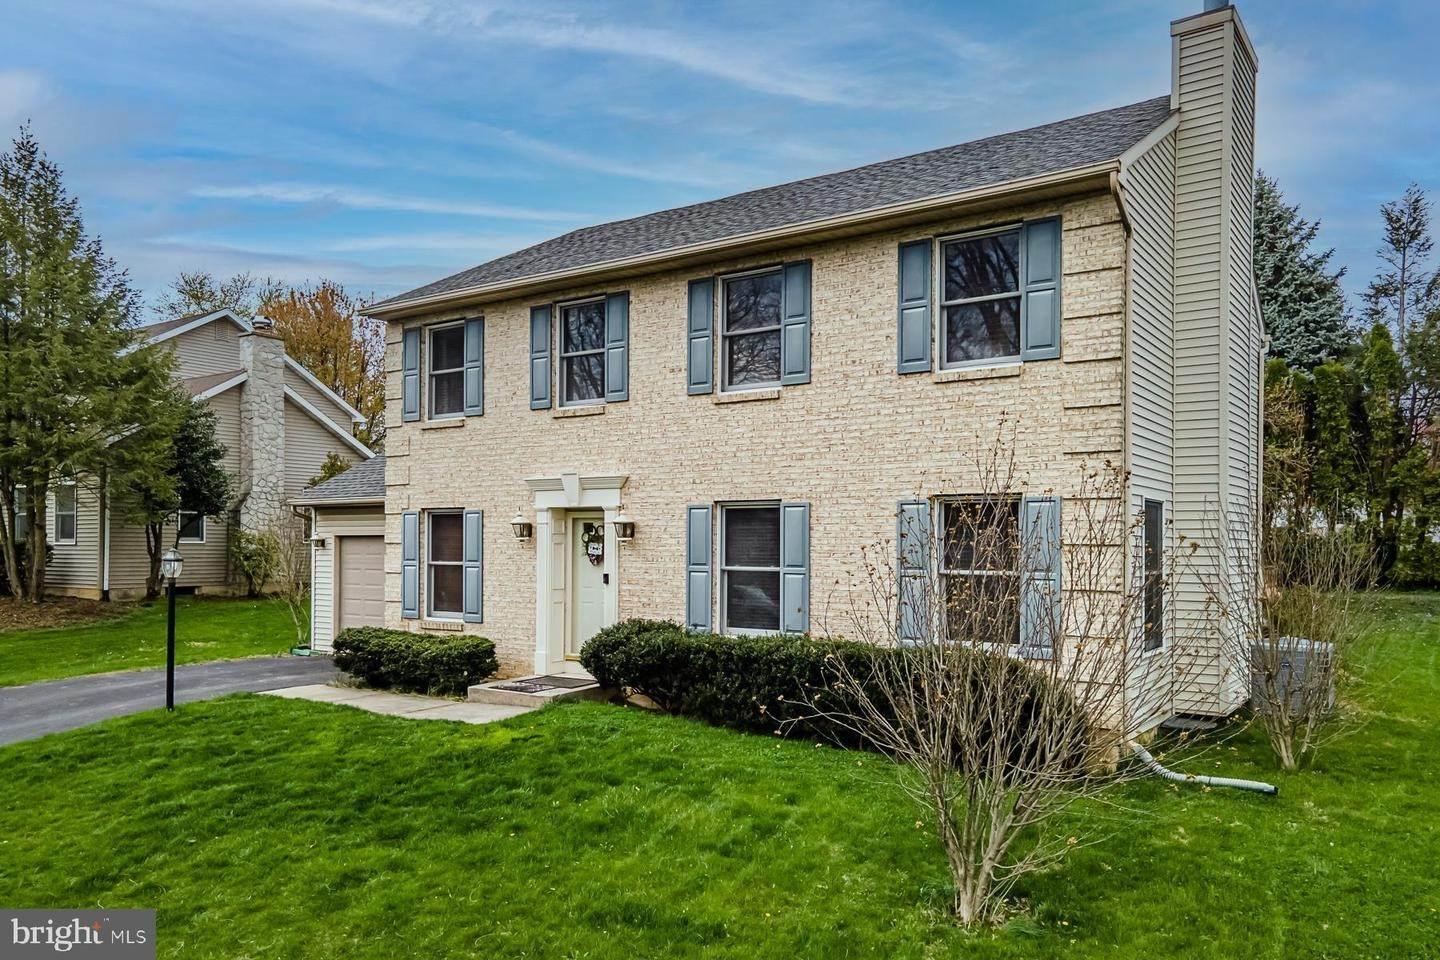 Detached House for Sale at 4171 CARTIER Drive Allentown, Pennsylvania 18104 United States